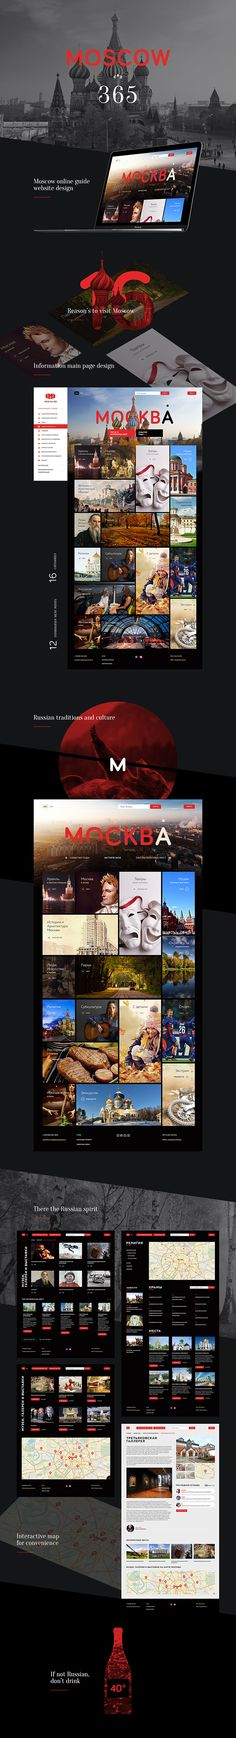 Moscow 365 website design